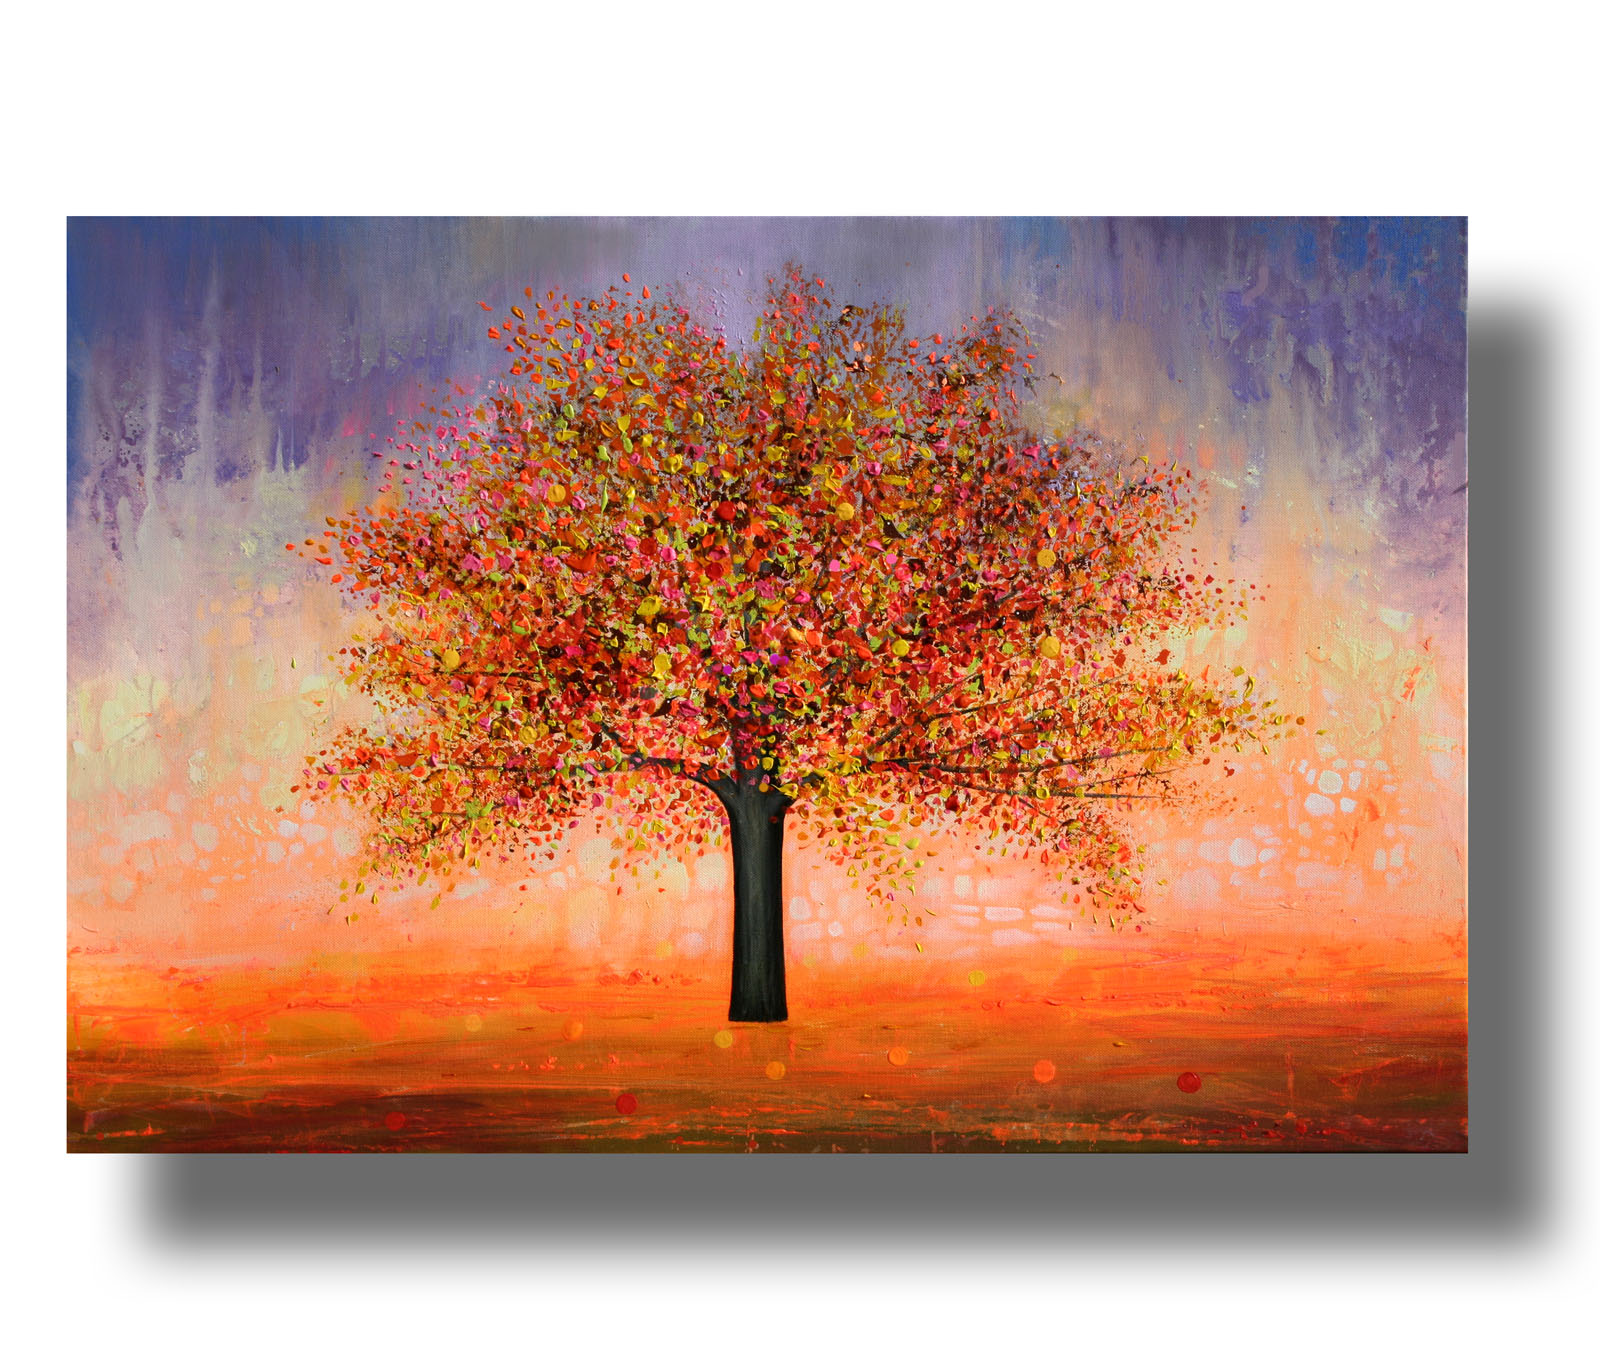 The apple tree__Acrylic on stretched canvas__ 24x36 inches